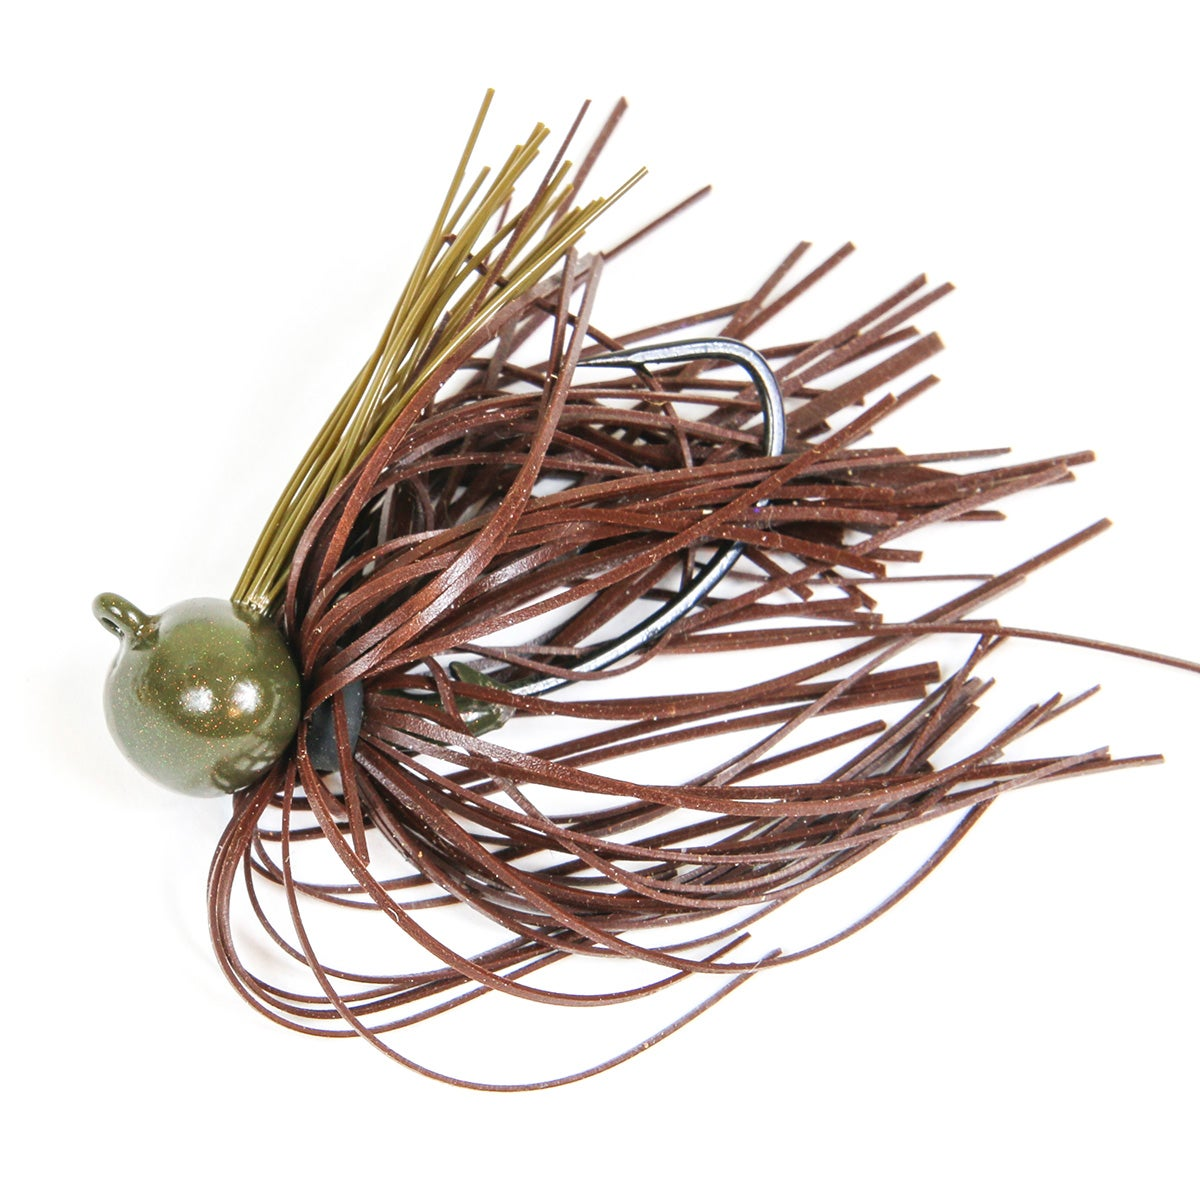 The Pros' Favorite Winter Time Bass Lures